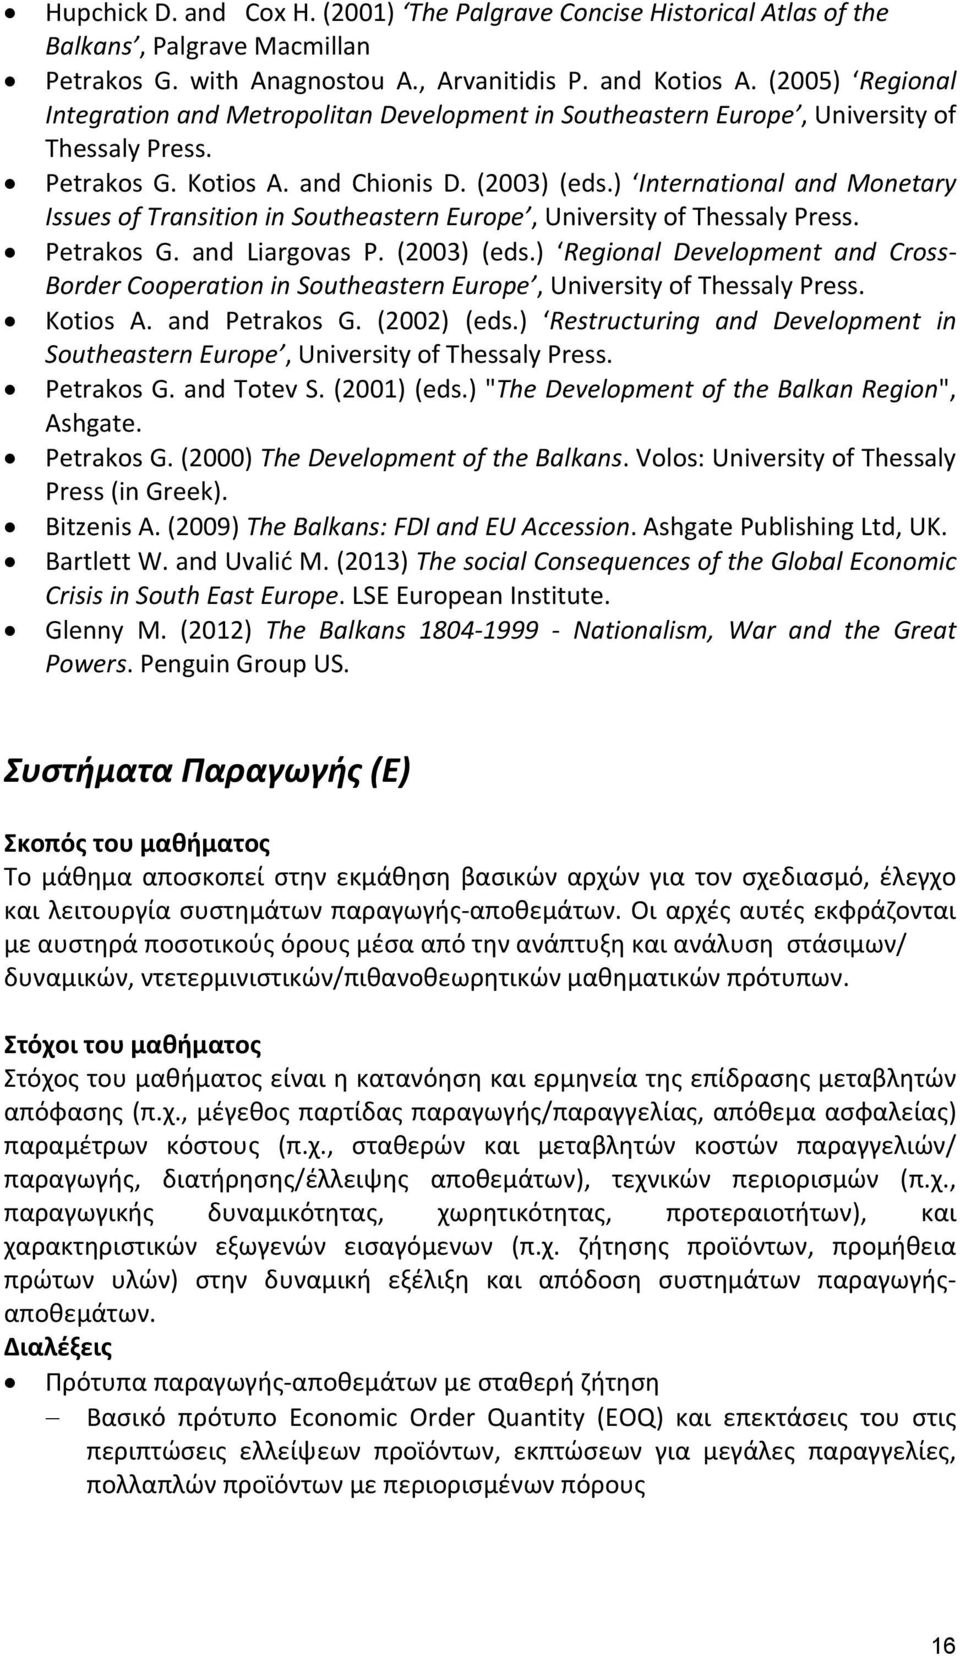 ) International and Monetary Issues of Transition in Southeastern Europe, University of Thessaly Press. Petrakos G. and Liargovas P. (2003) (eds.